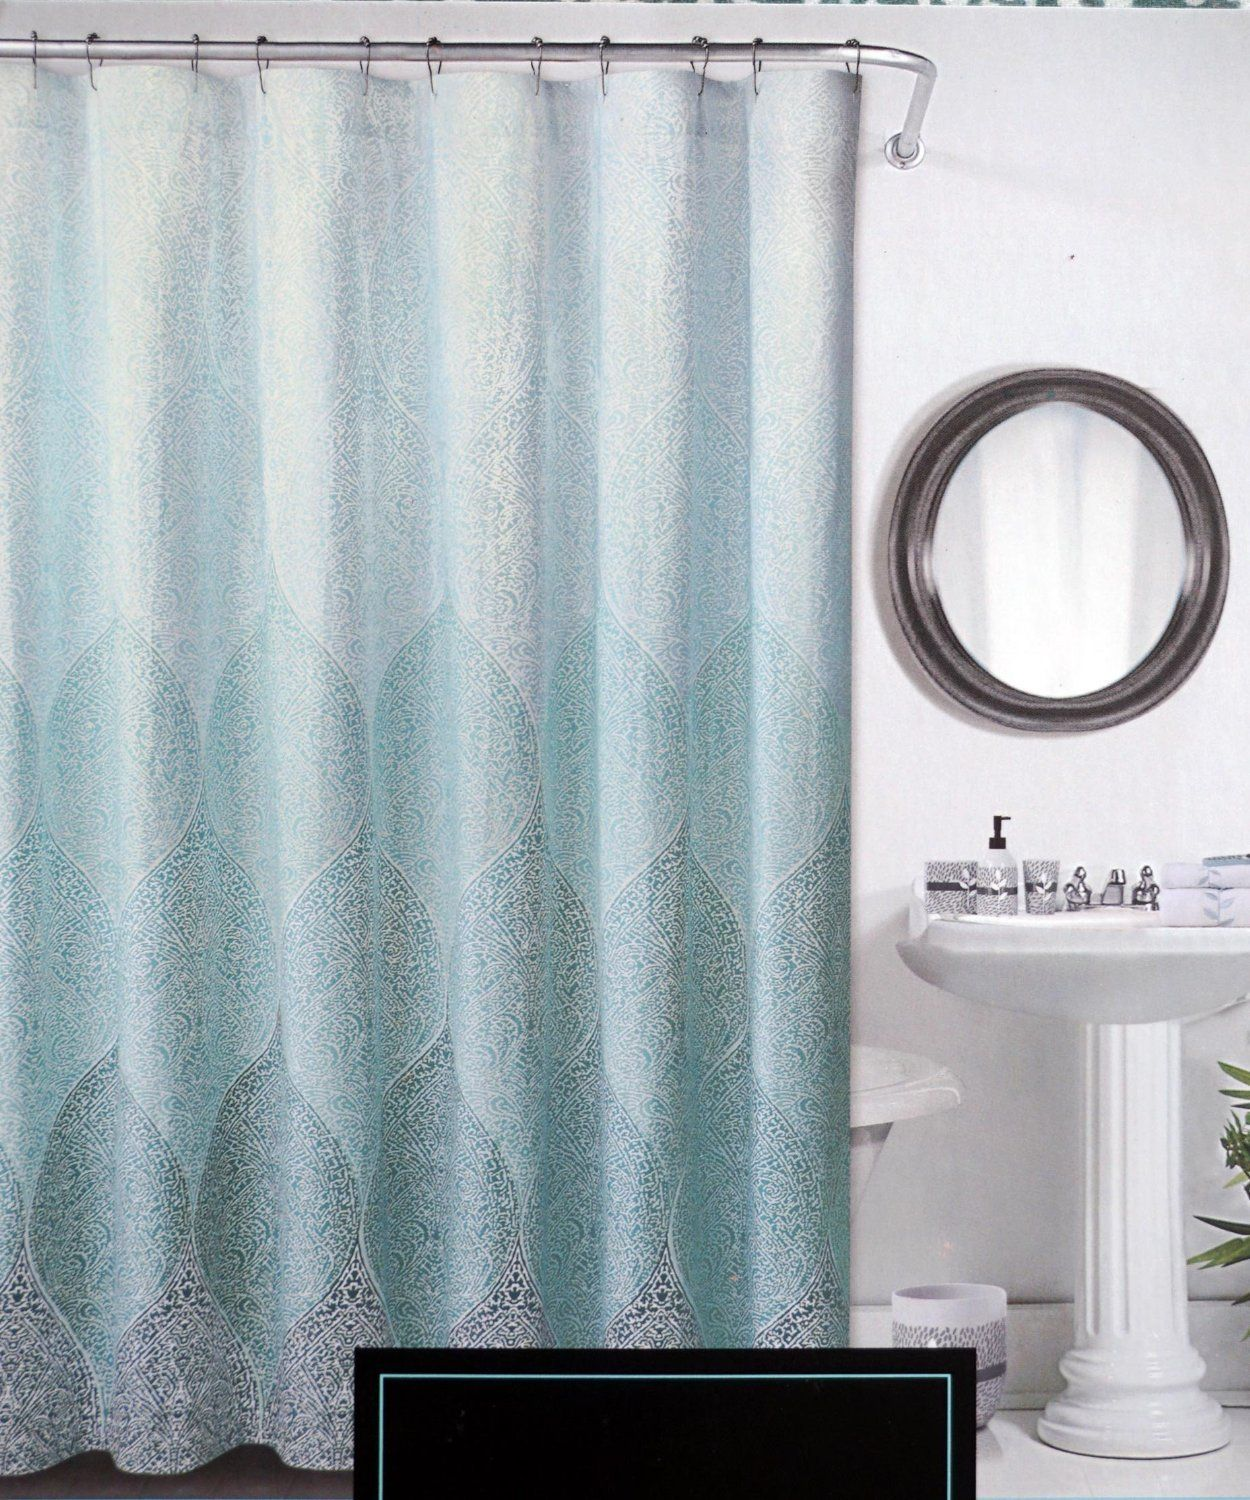 Amazon.com: Cynthia Rowley Fabric Shower Curtain Stamped Ombre Teal ...